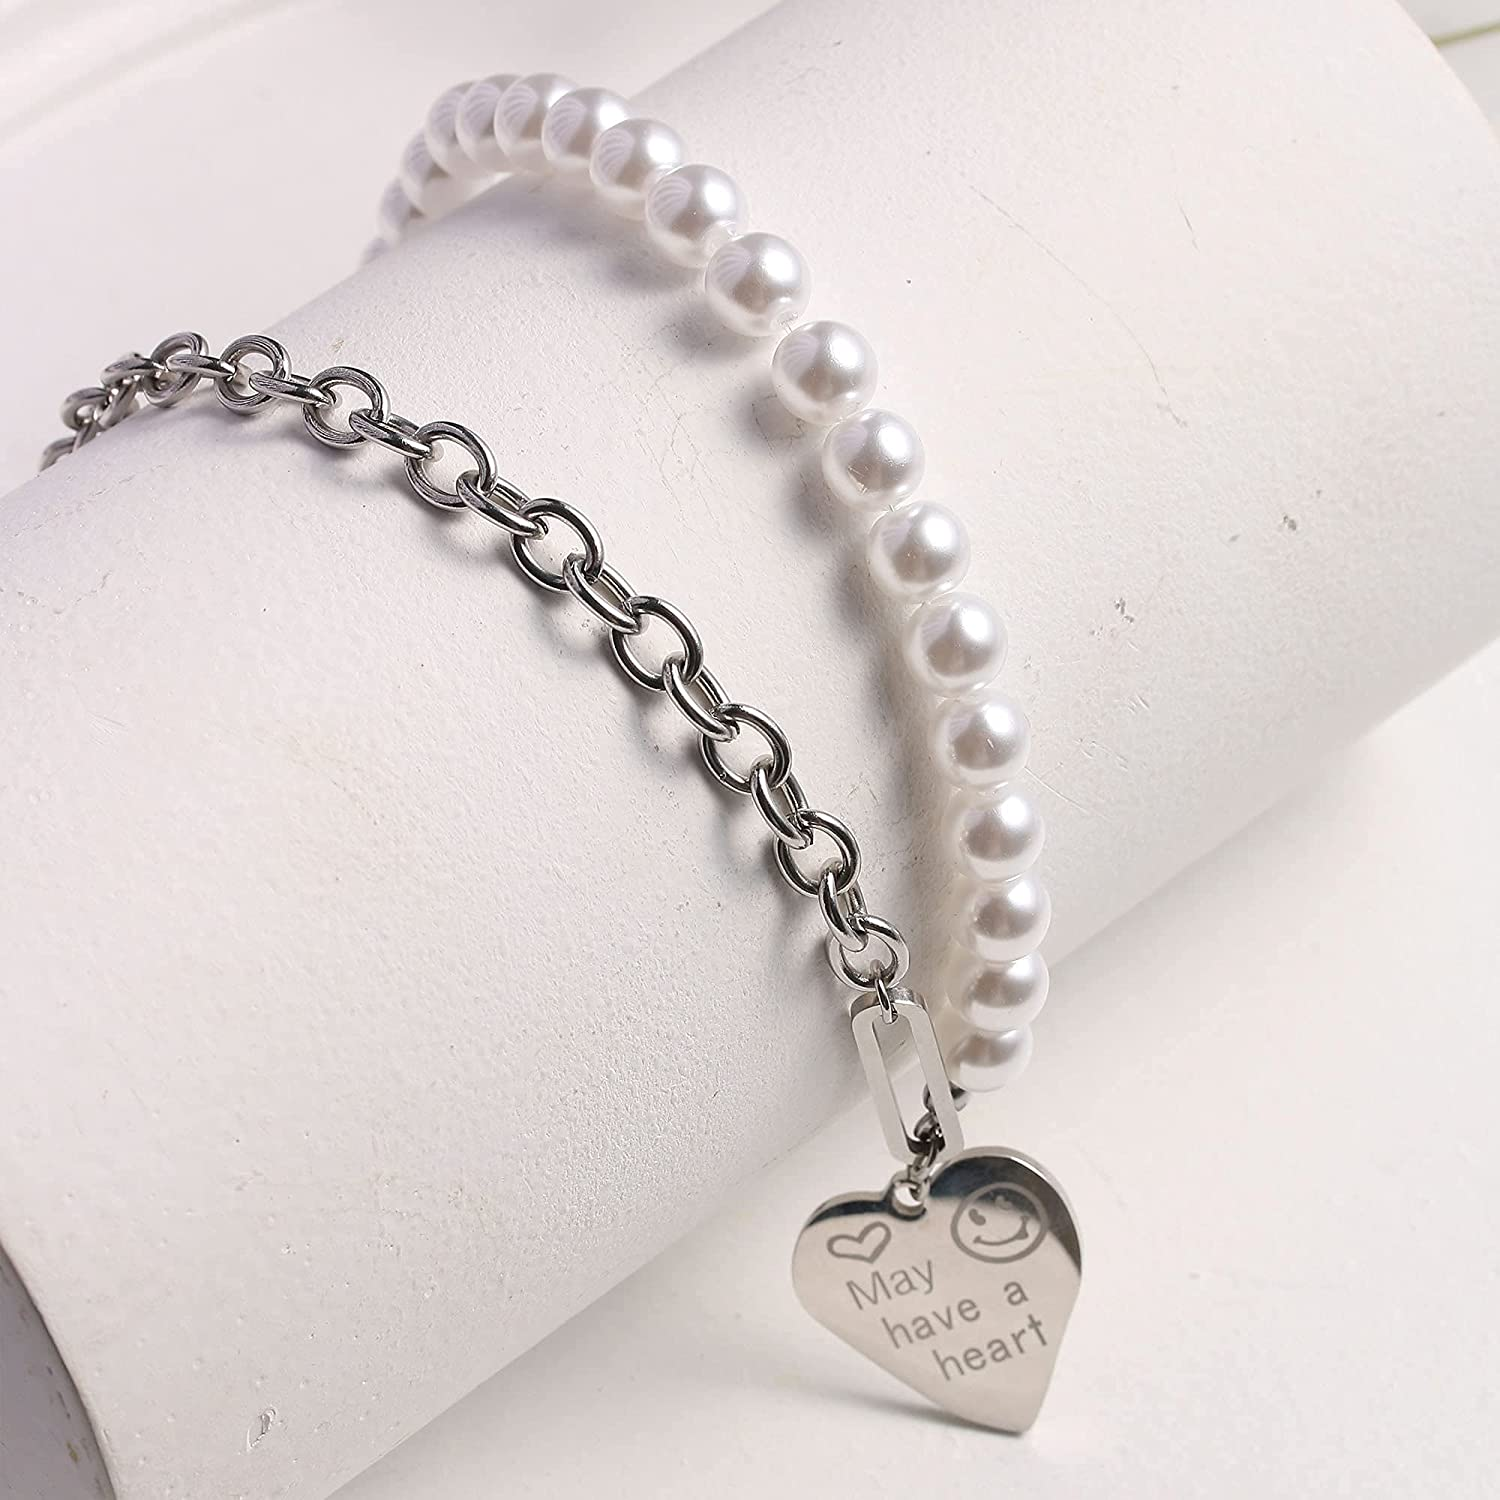 Half Pearl Chain Necklace y2k Smiley Face Cross Heart Coin Chunky Chain Baroque Hip Hop Smiley Face Half Pearl Chocker Necklaces for Women